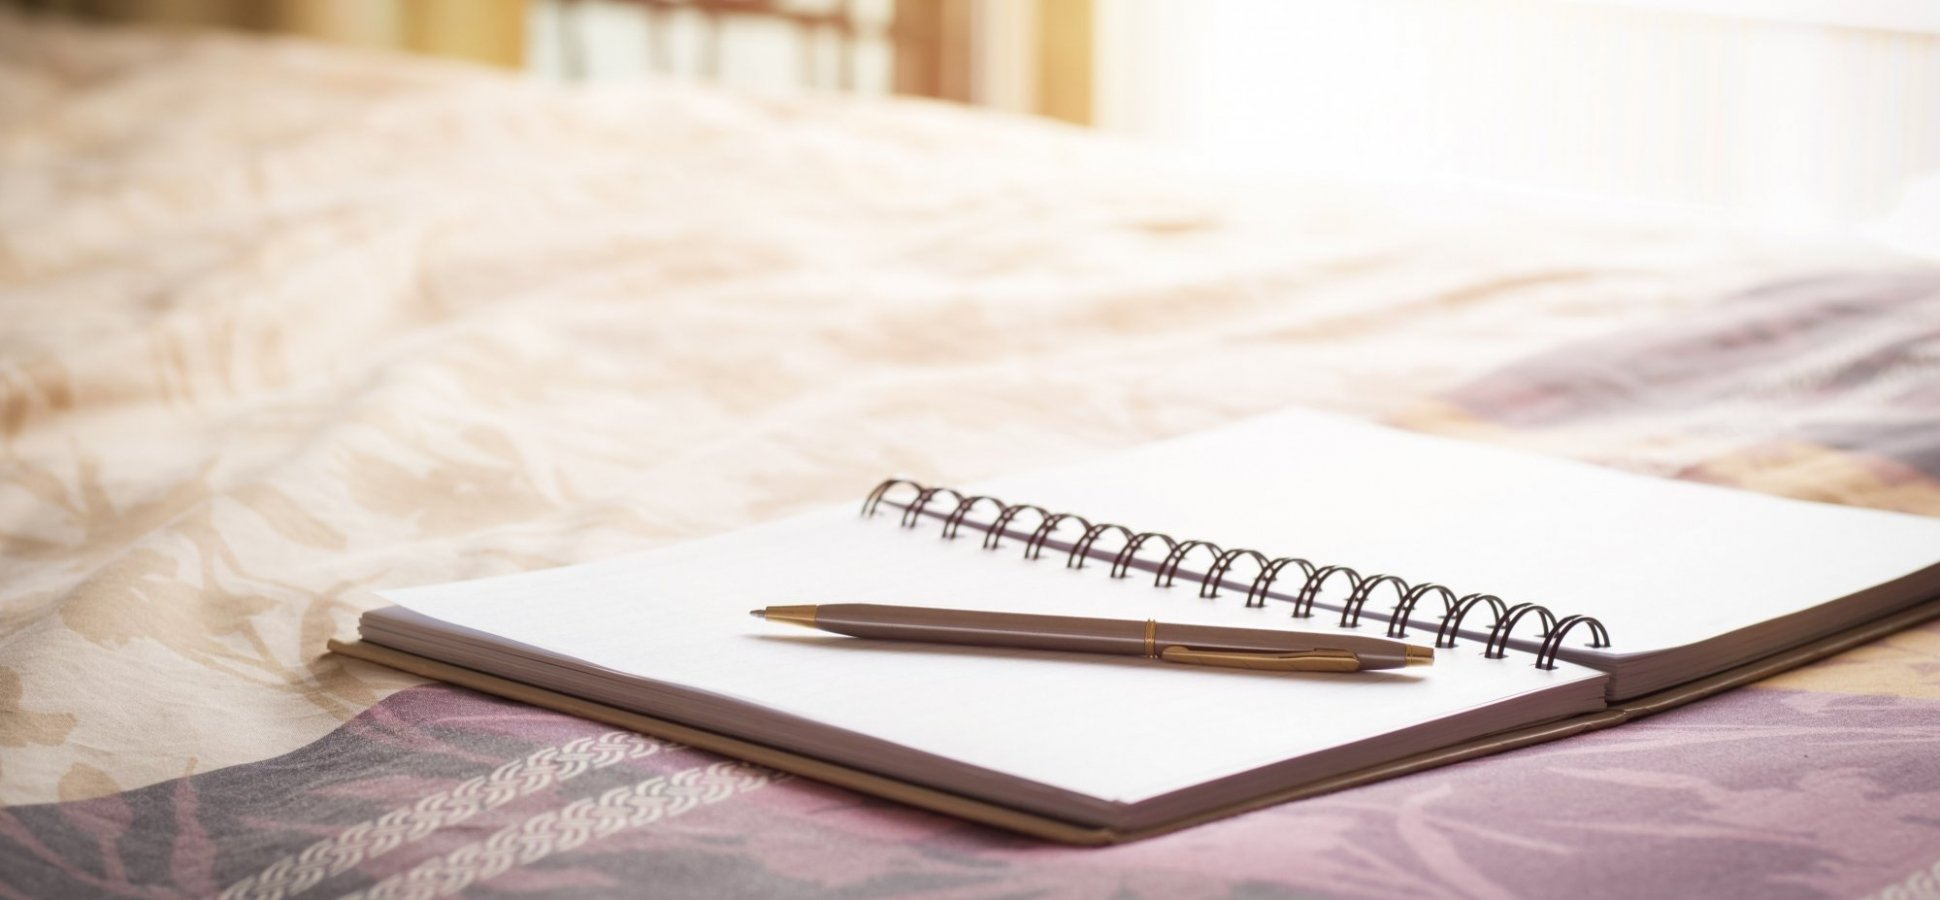 Never Been Able to Keep a Journal Before? This Is the Journal Format for You